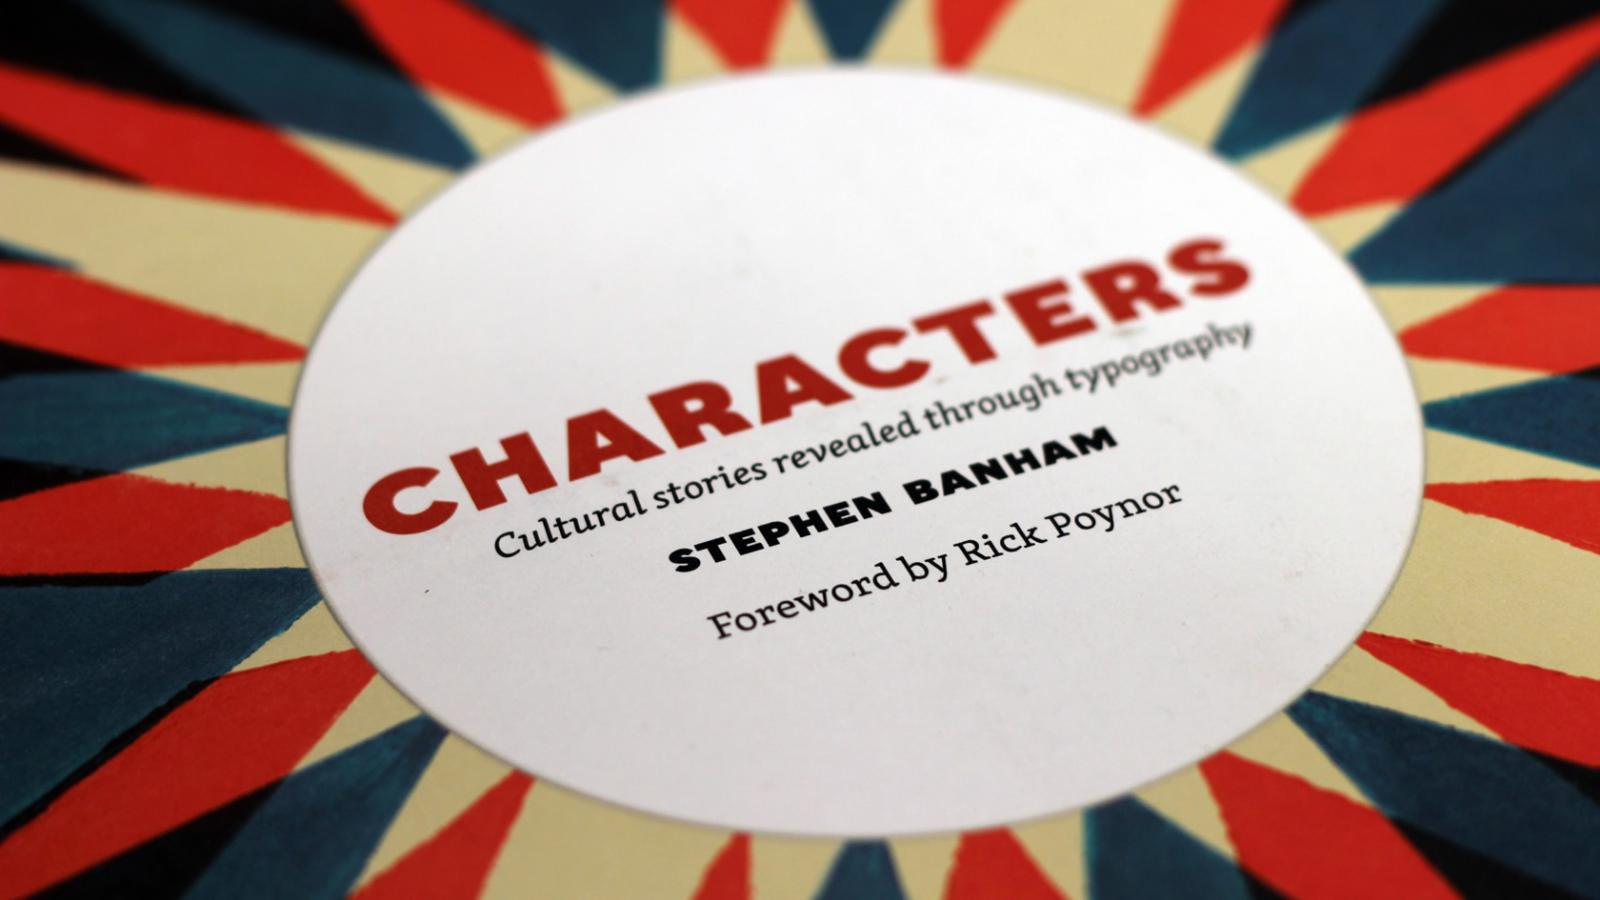 Book Suggestion: Characters: Cultural Stories Revealed Through Typography